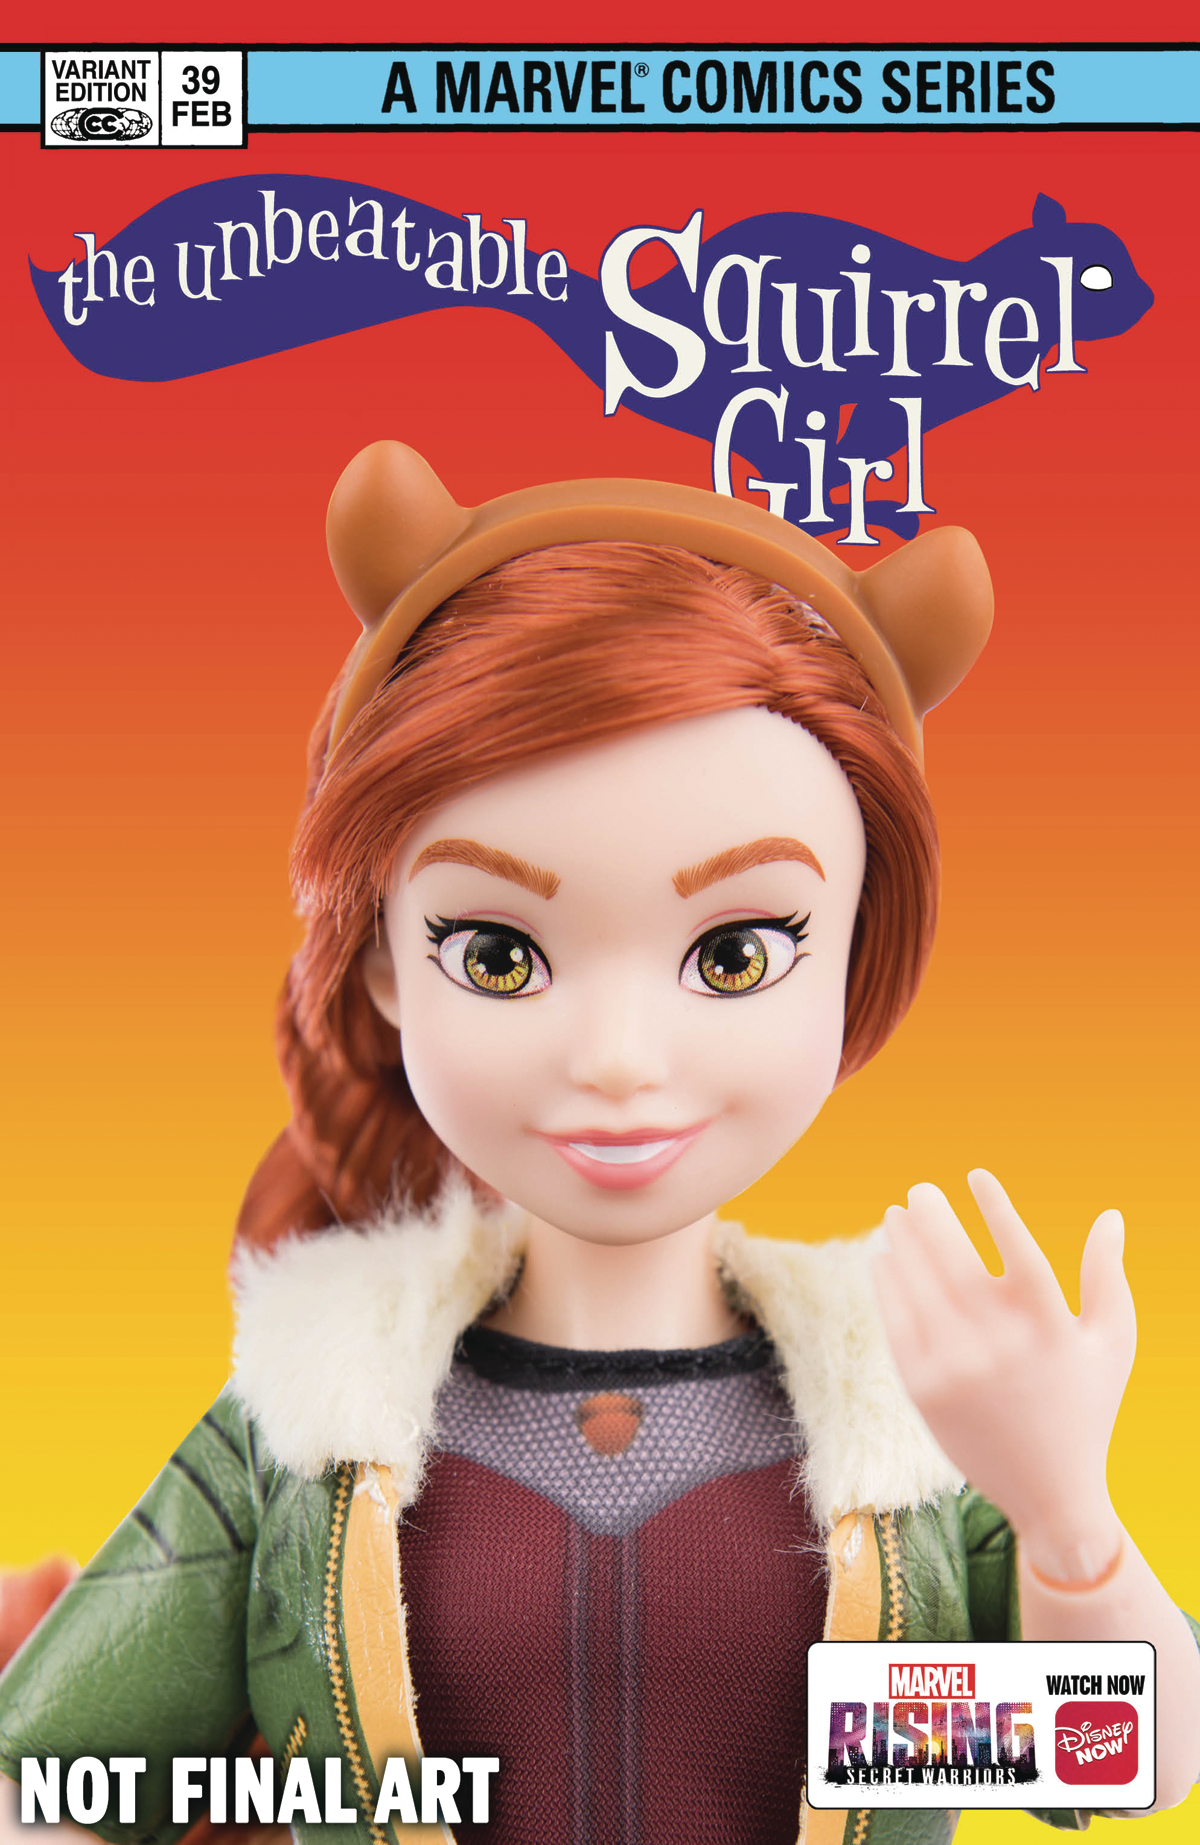 UNBEATABLE SQUIRREL GIRL #39 MARVEL RISING ACTION DOLL HOMAG